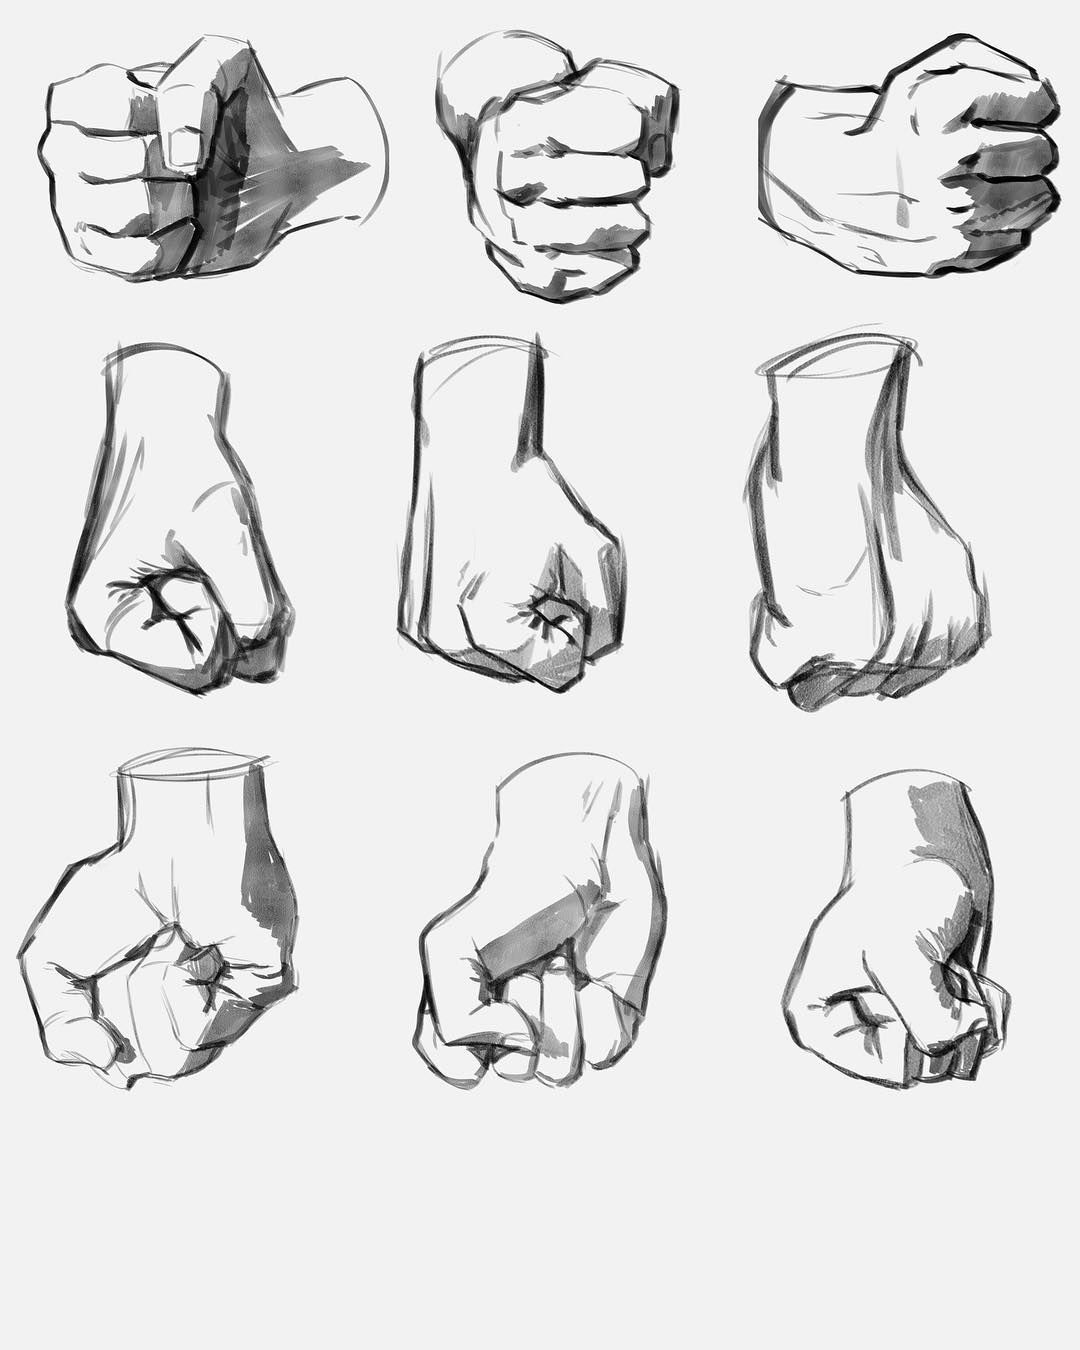 And Day 3 Monthlychallenge Artchallenge Hands Drawings Artstudies Fist Hand Drawing Reference How To Draw Hands Drawing Fist